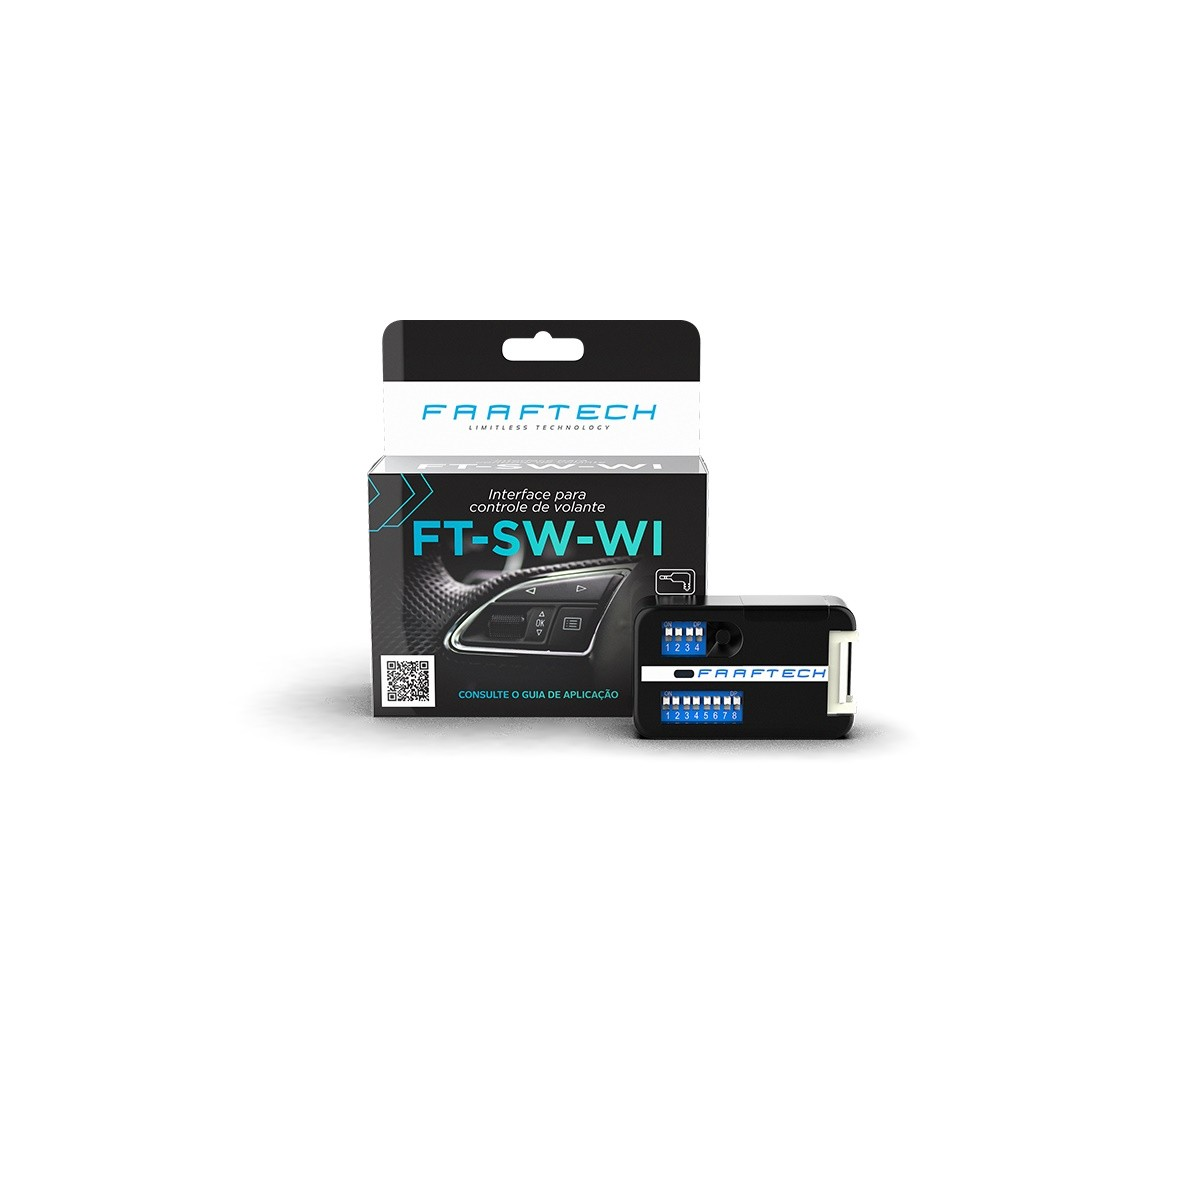 Interface de Volante universal para carros com entrada analógica FT-SW-WI